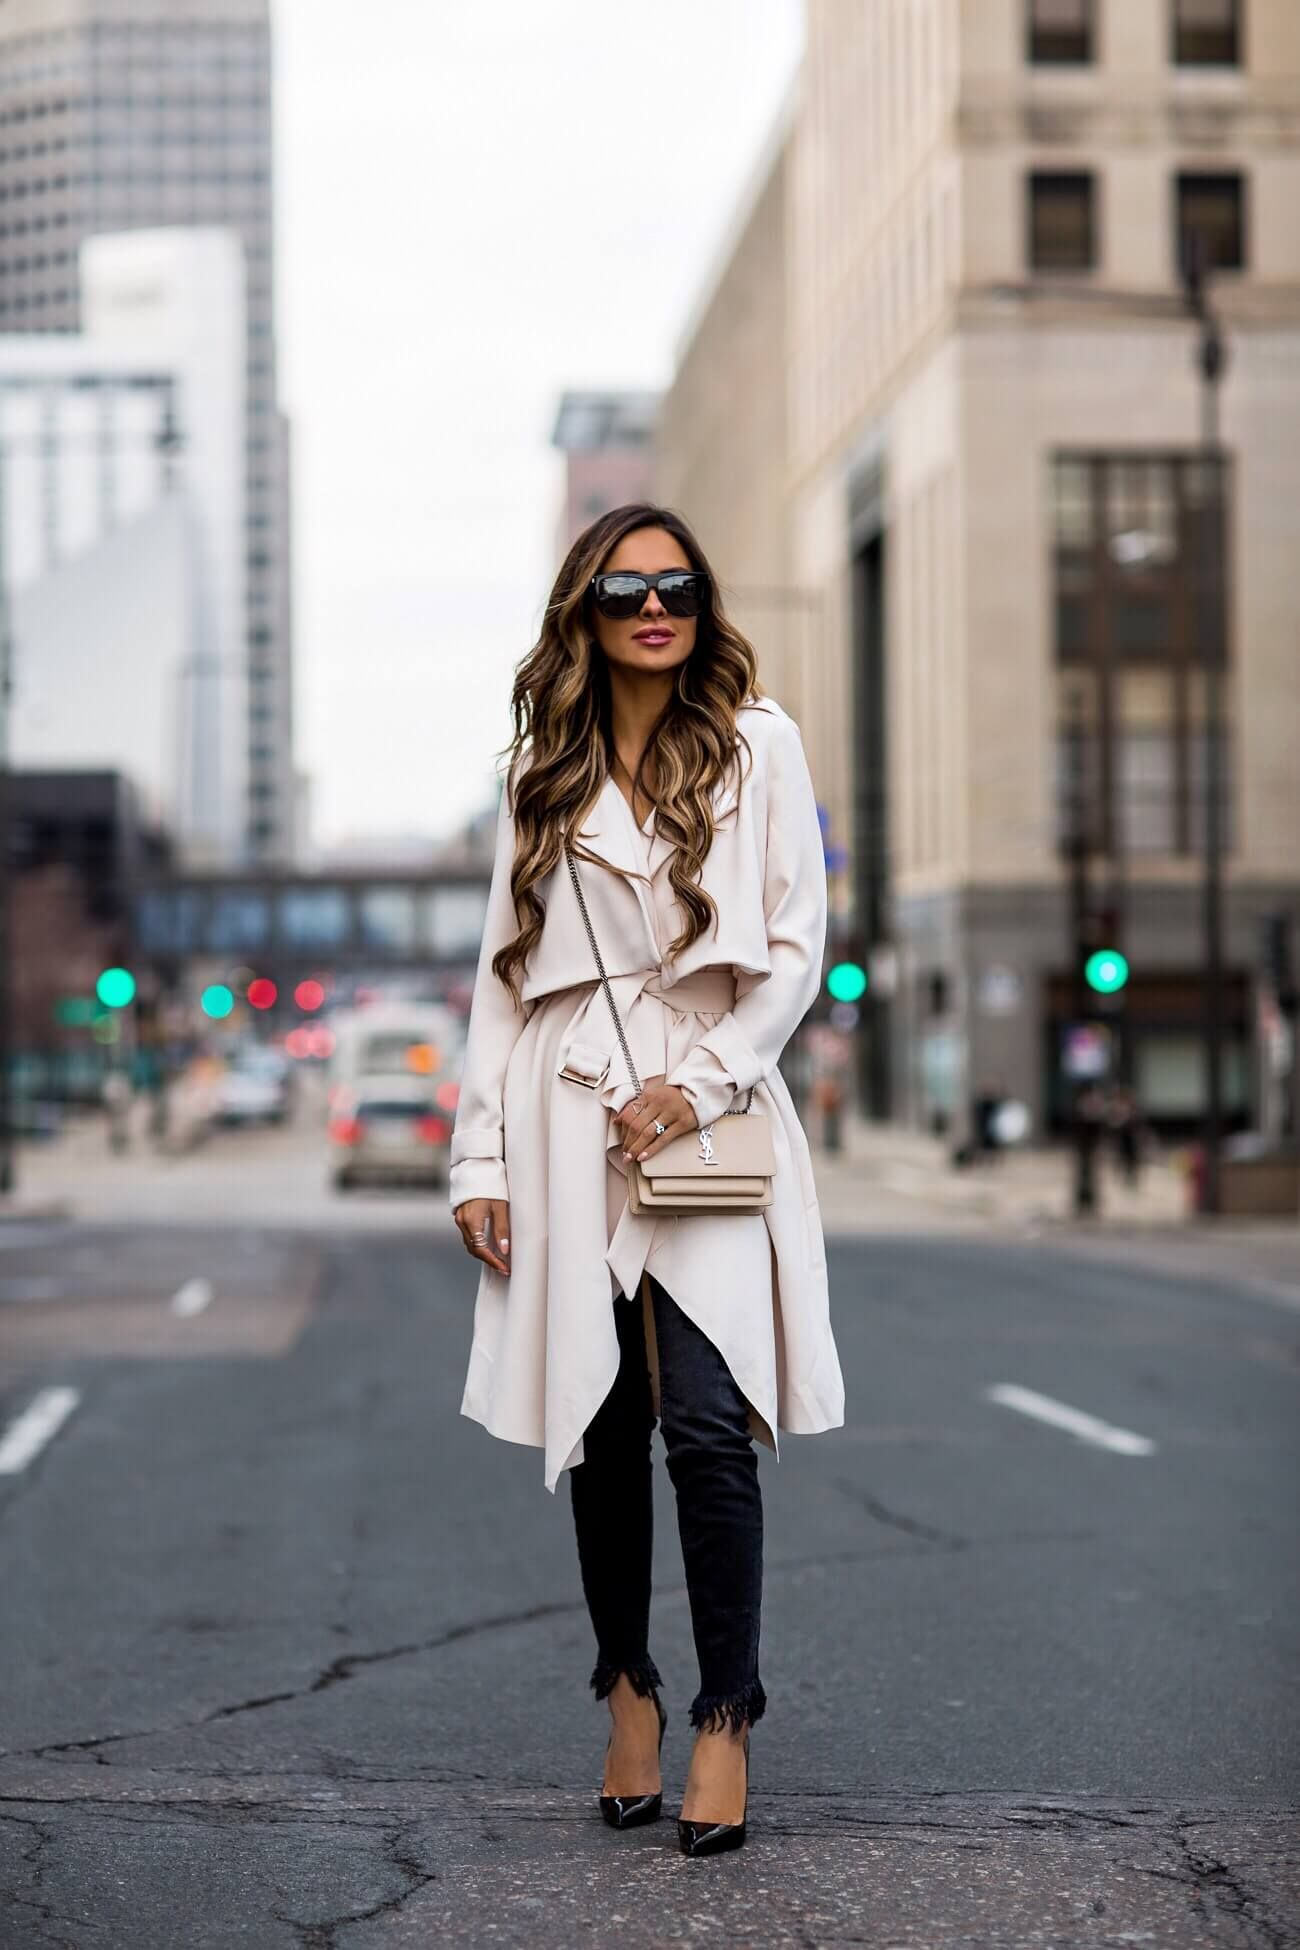 65a390ff058c fashion blogger mia mia mine wearing an ivory trench coat from nordstrom  and black christian louboutin heels